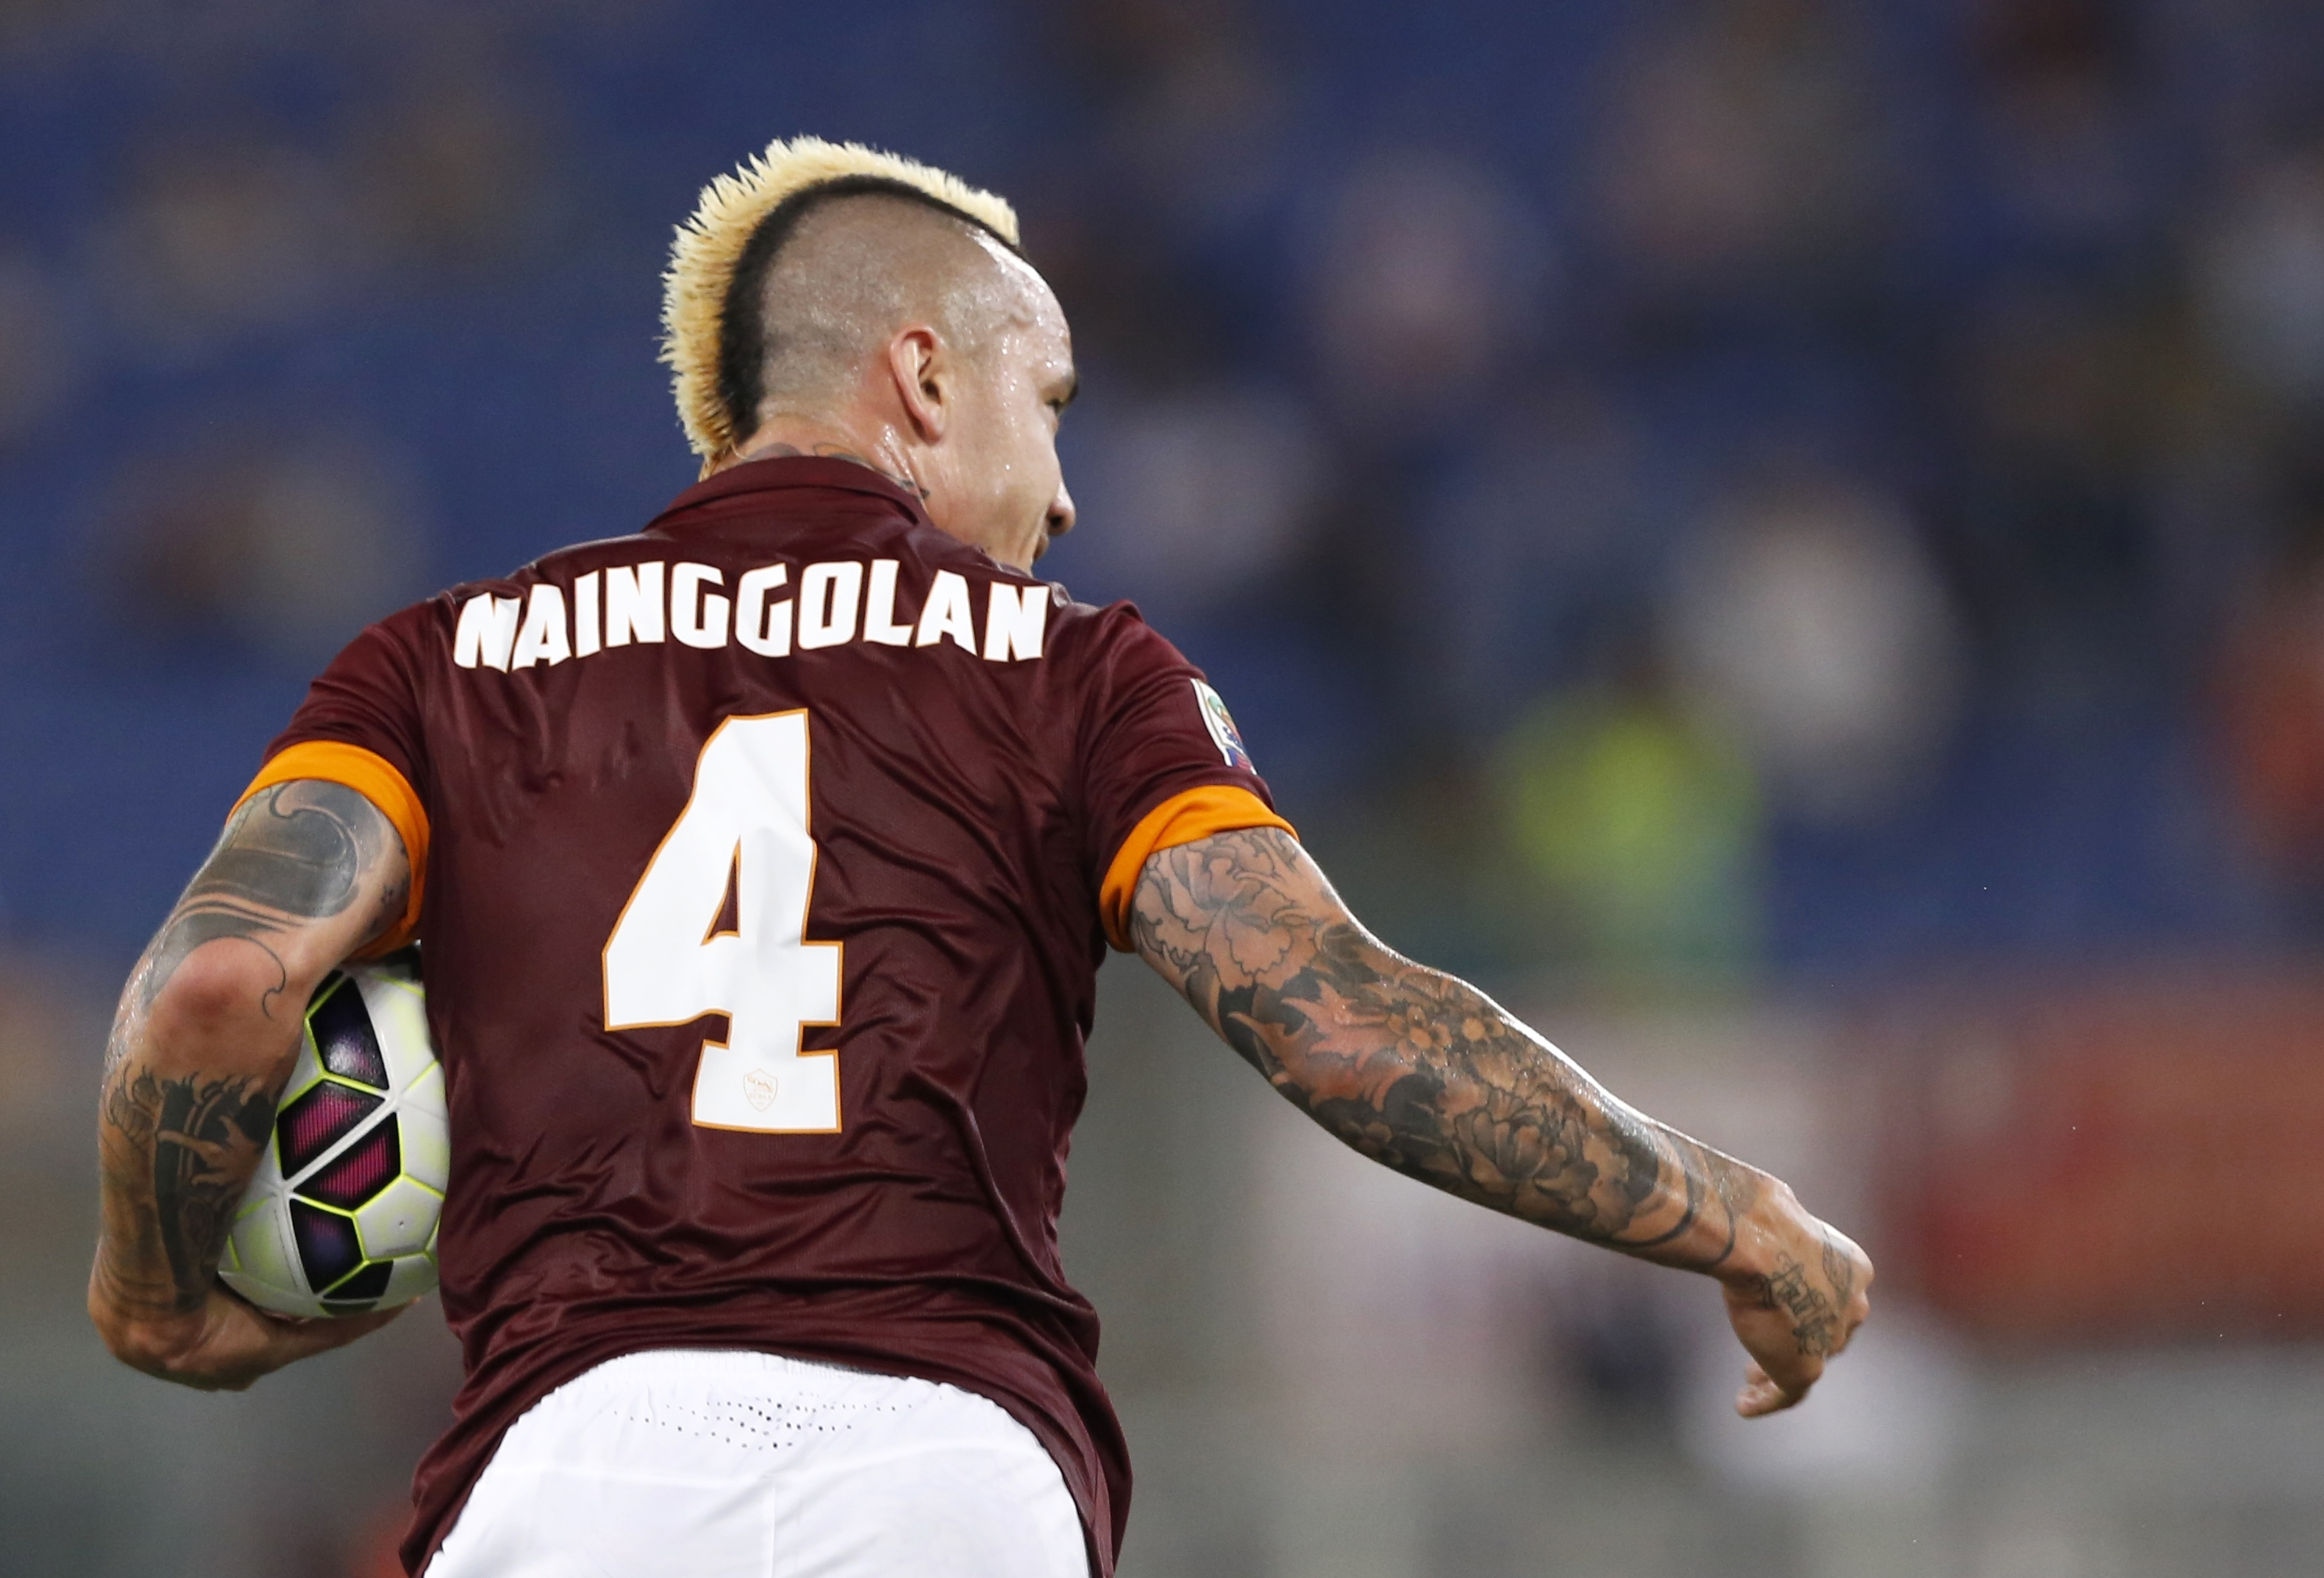 Manchester United want to sign Radja Nainggolan this summer